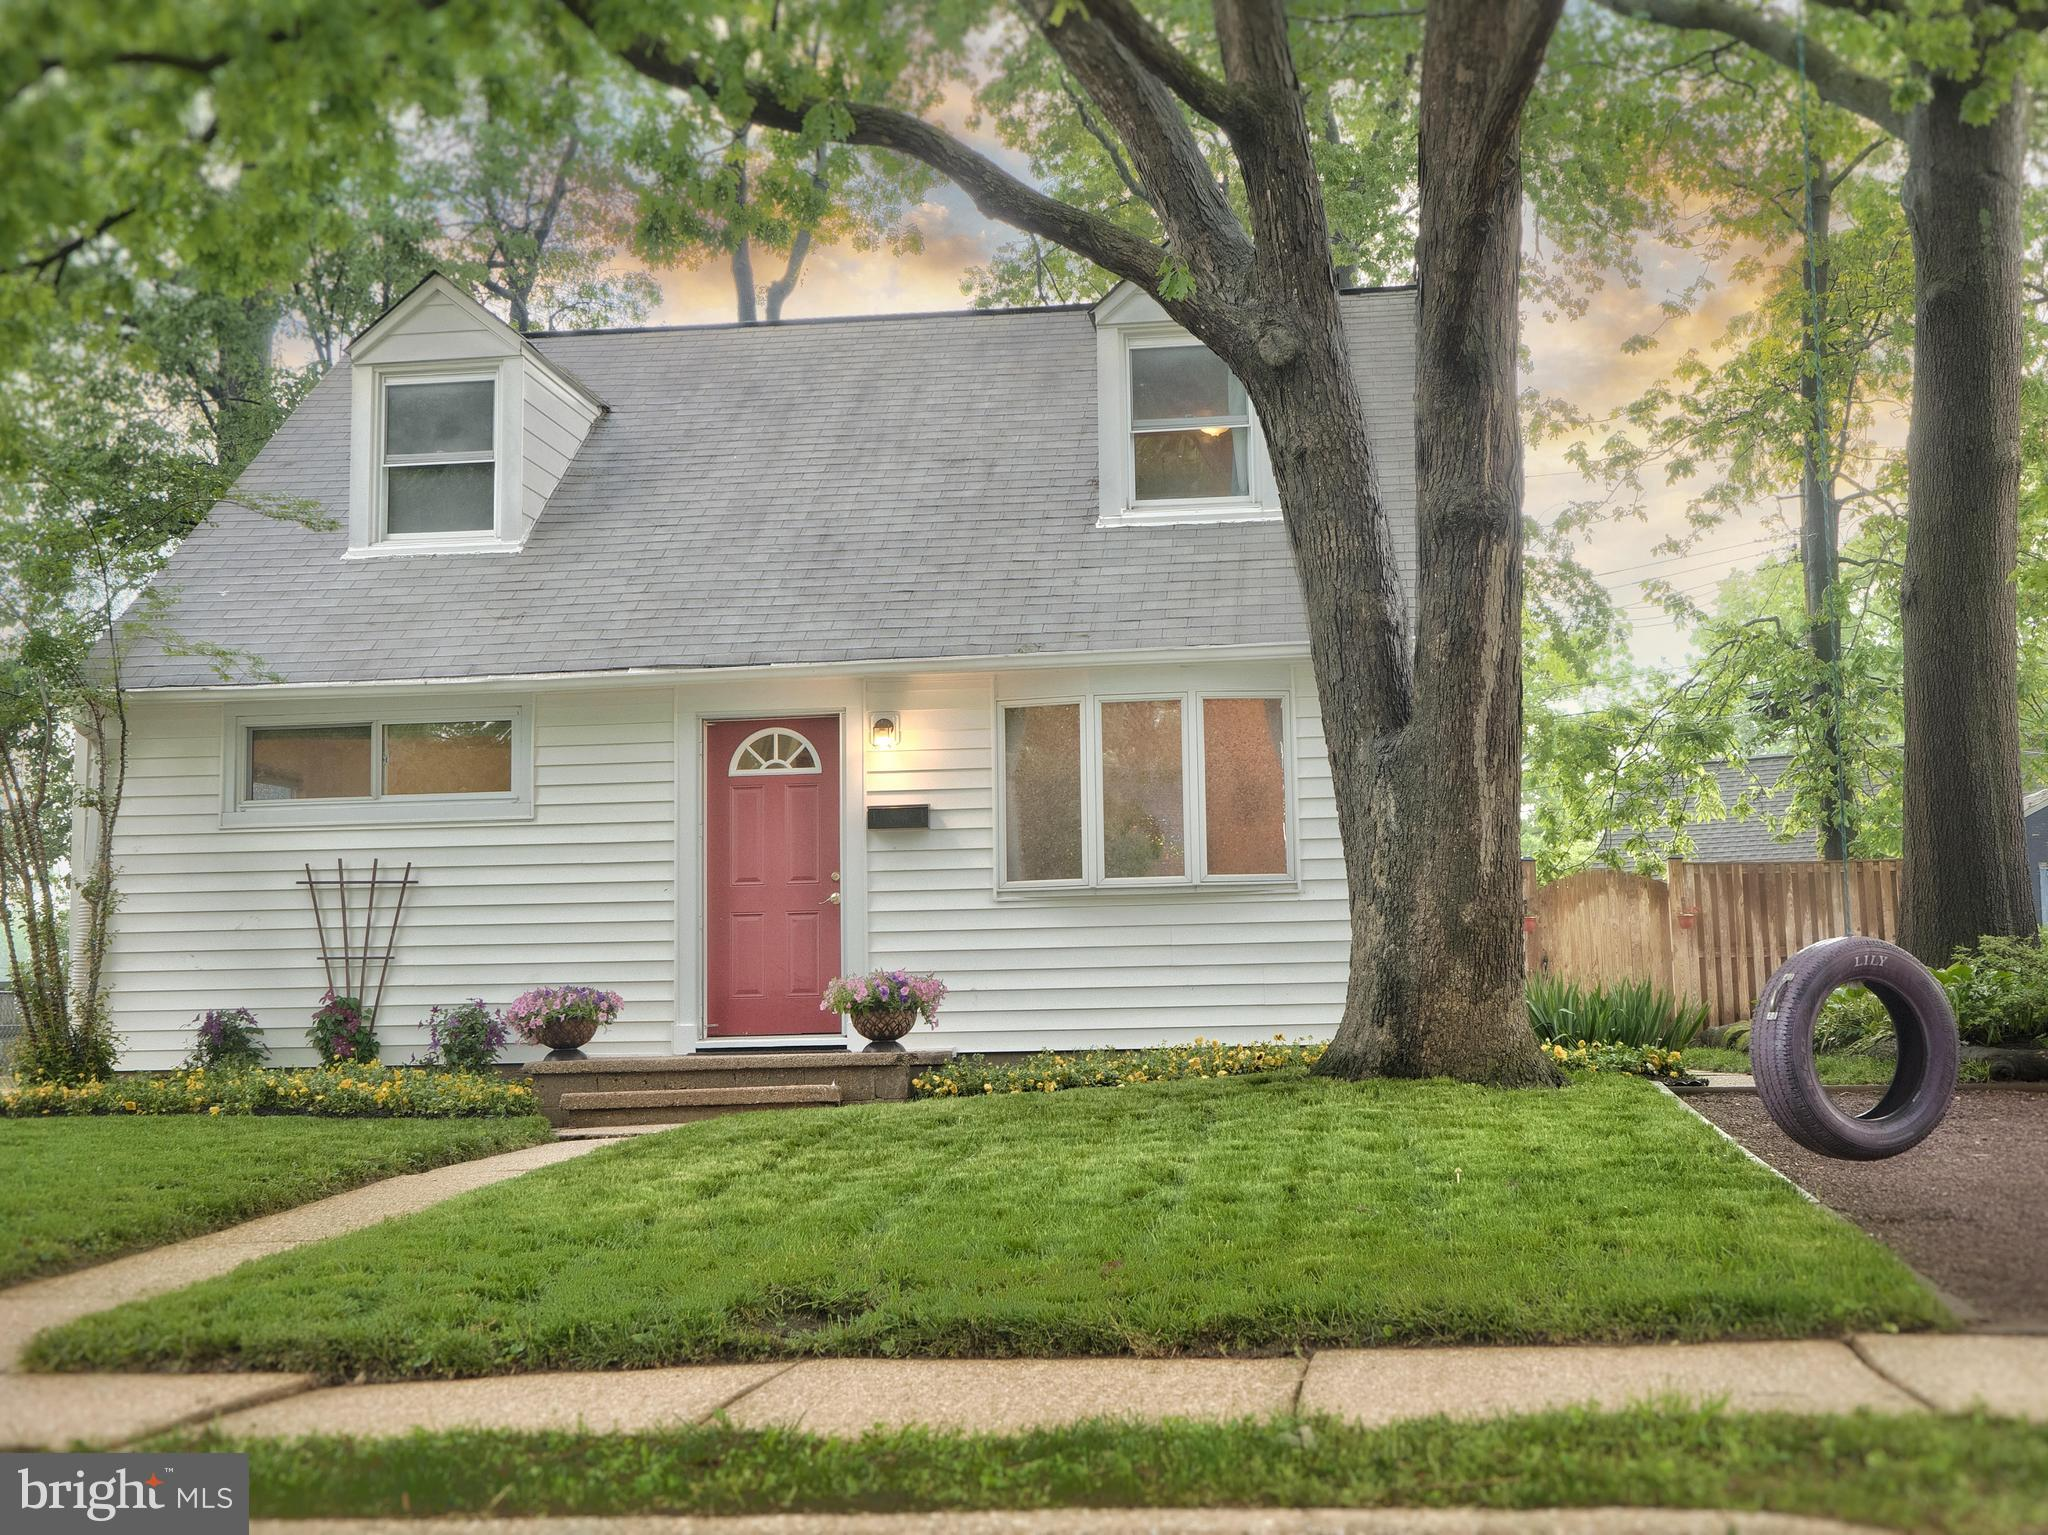 Beautifully updated Cape Cod with 4 bedrooms and 1 1/2 baths. Eat-in kitchen with maple cabinets and